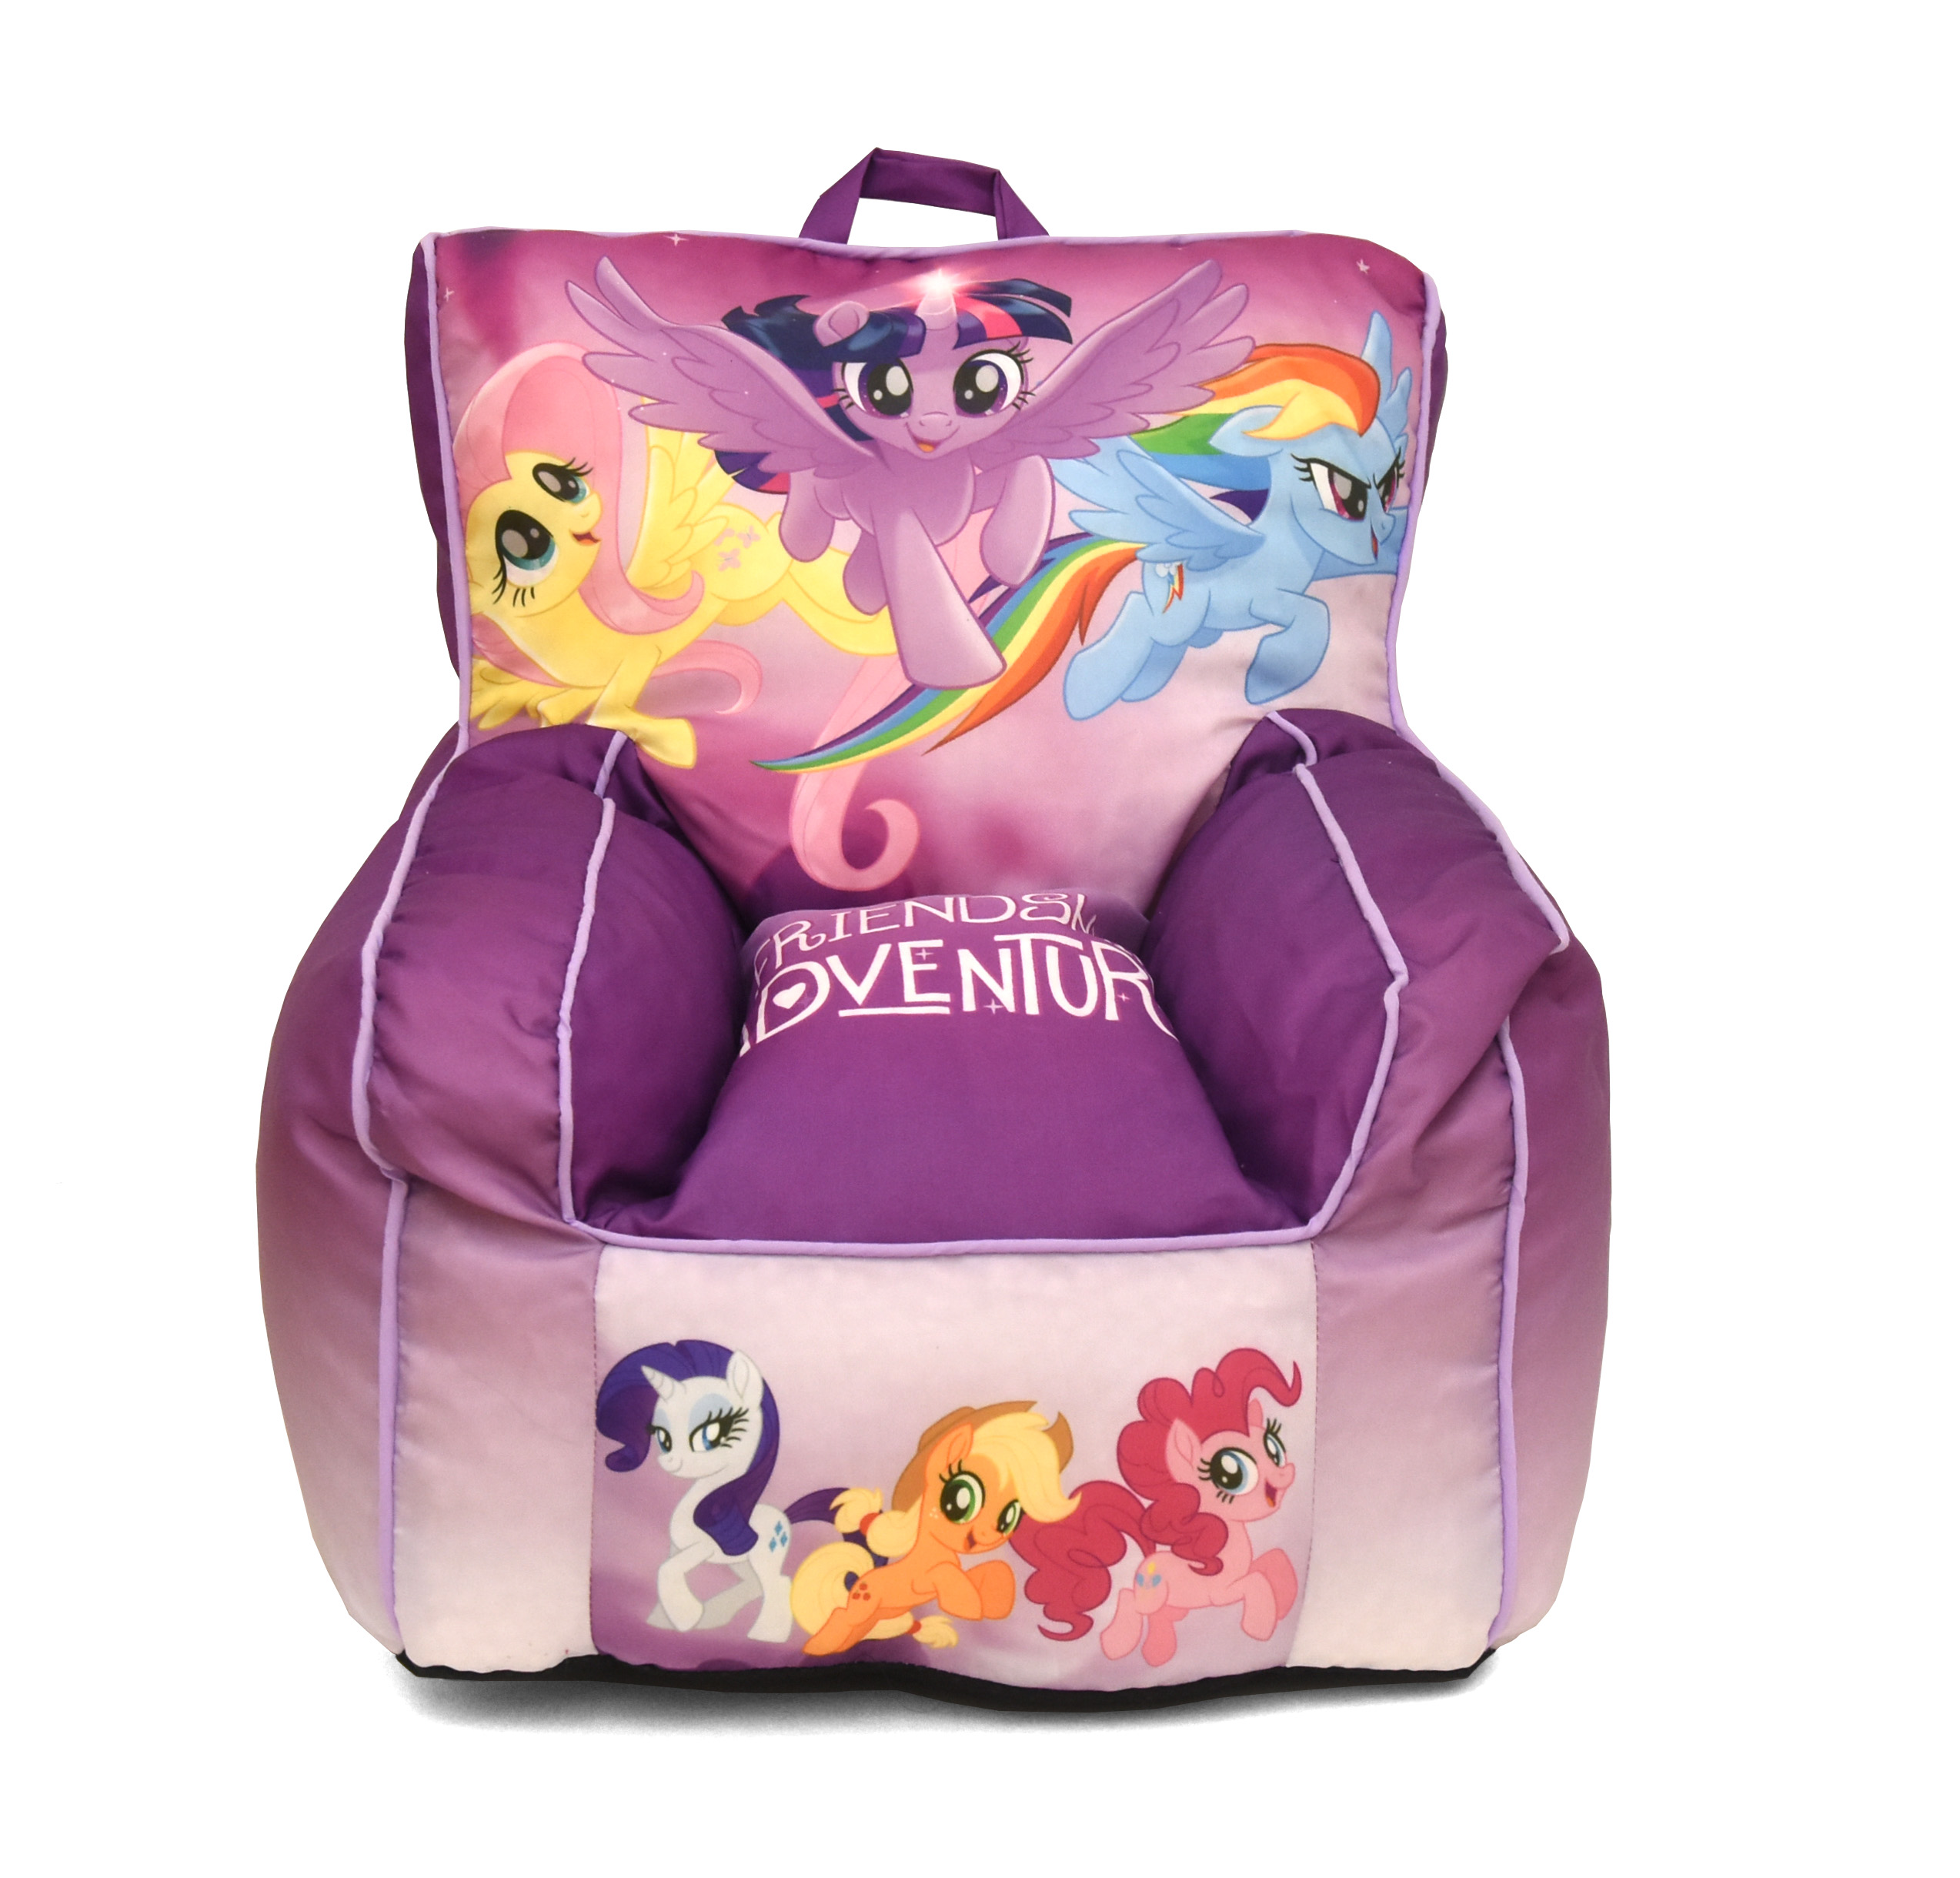 Mini Bean Bag Chair Hasbro My Little Pony Movie Mini Kids Bean Bag Chair